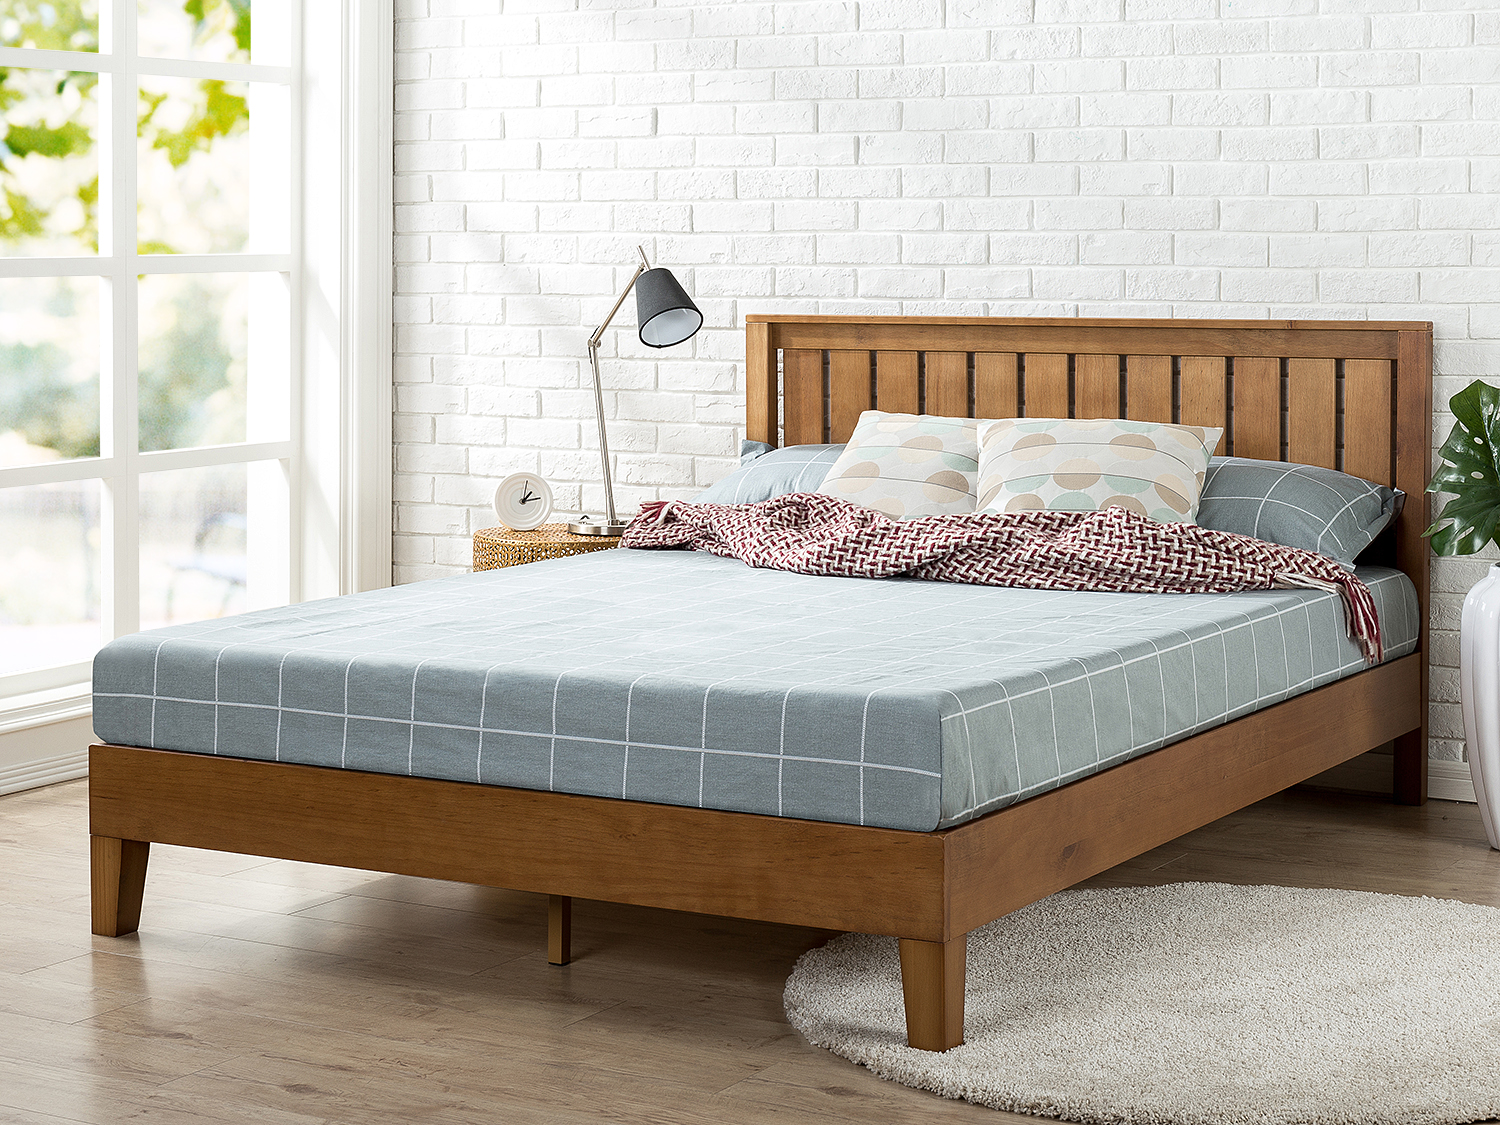 Zinus Alexis Deluxe Solid Wood Platform Bed With Headboard